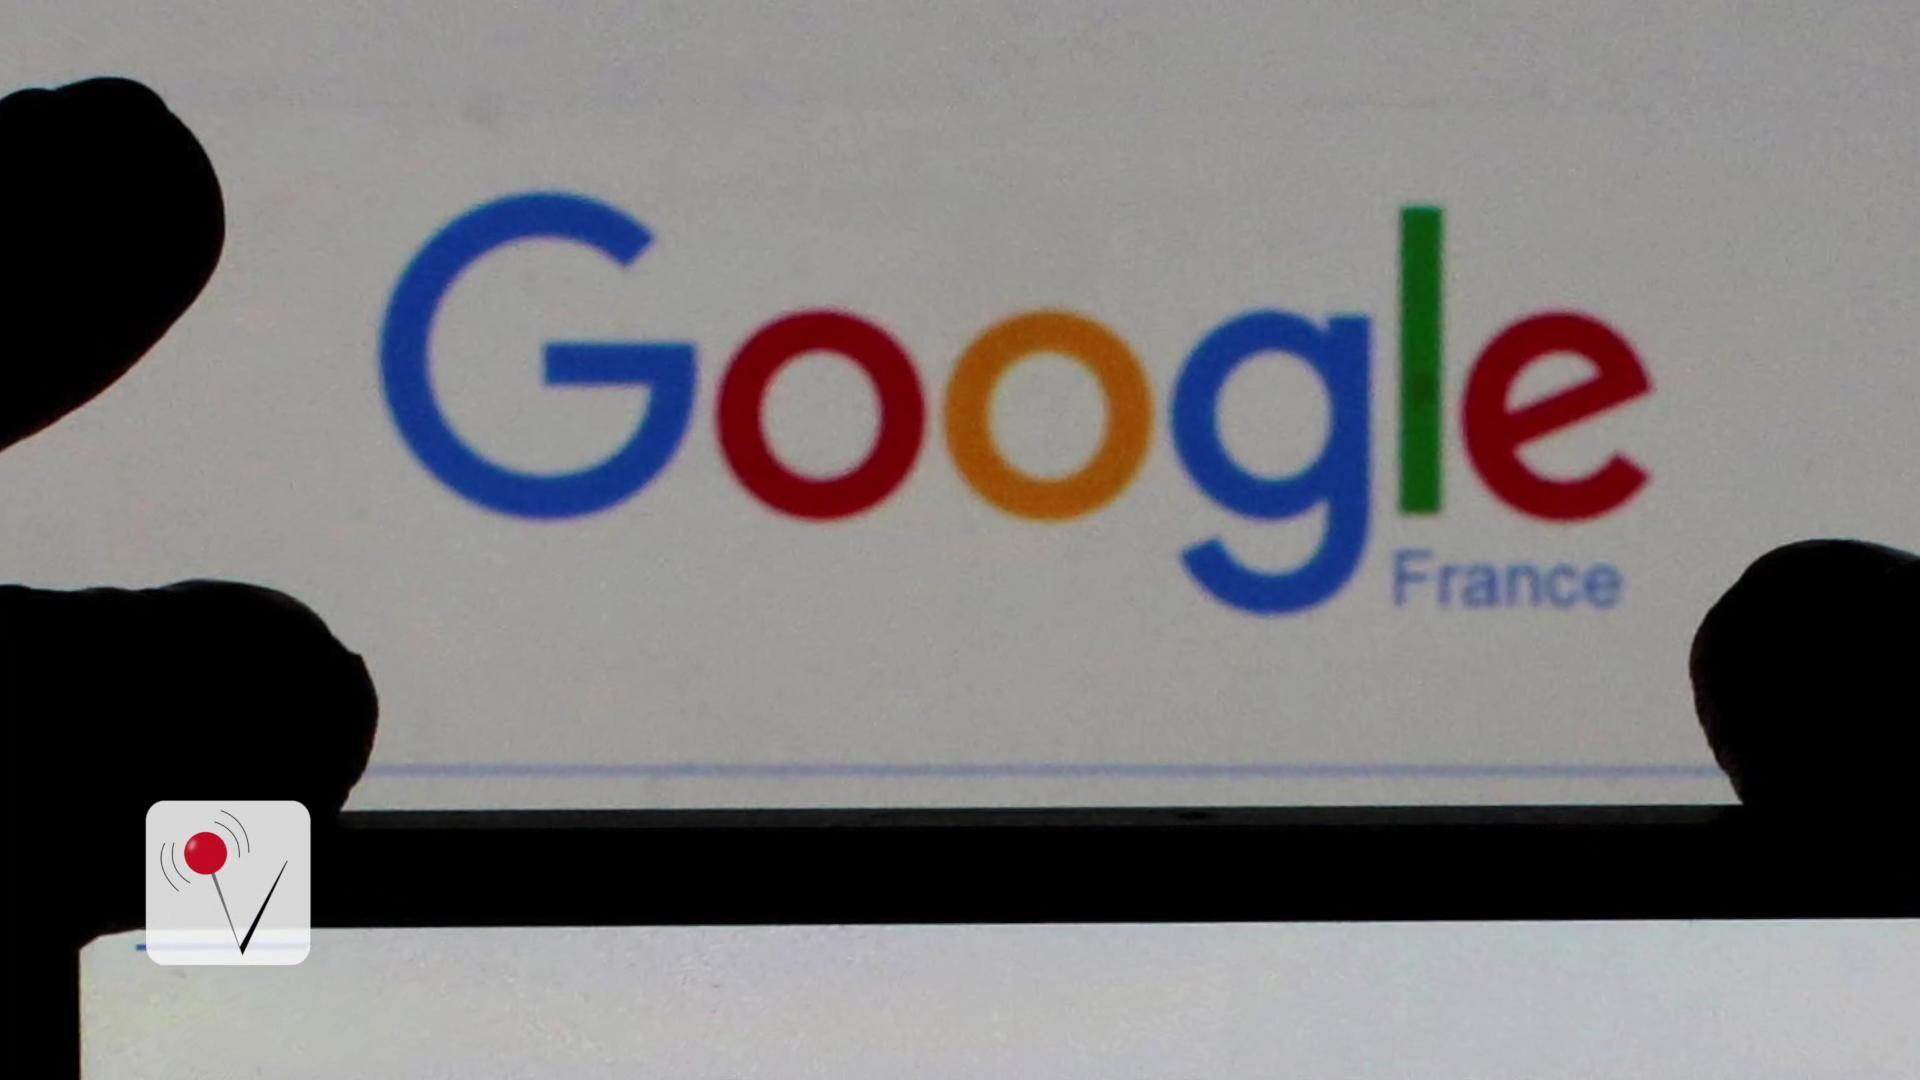 Google's Paris Headquarters Raided in Tax Evasion Probe